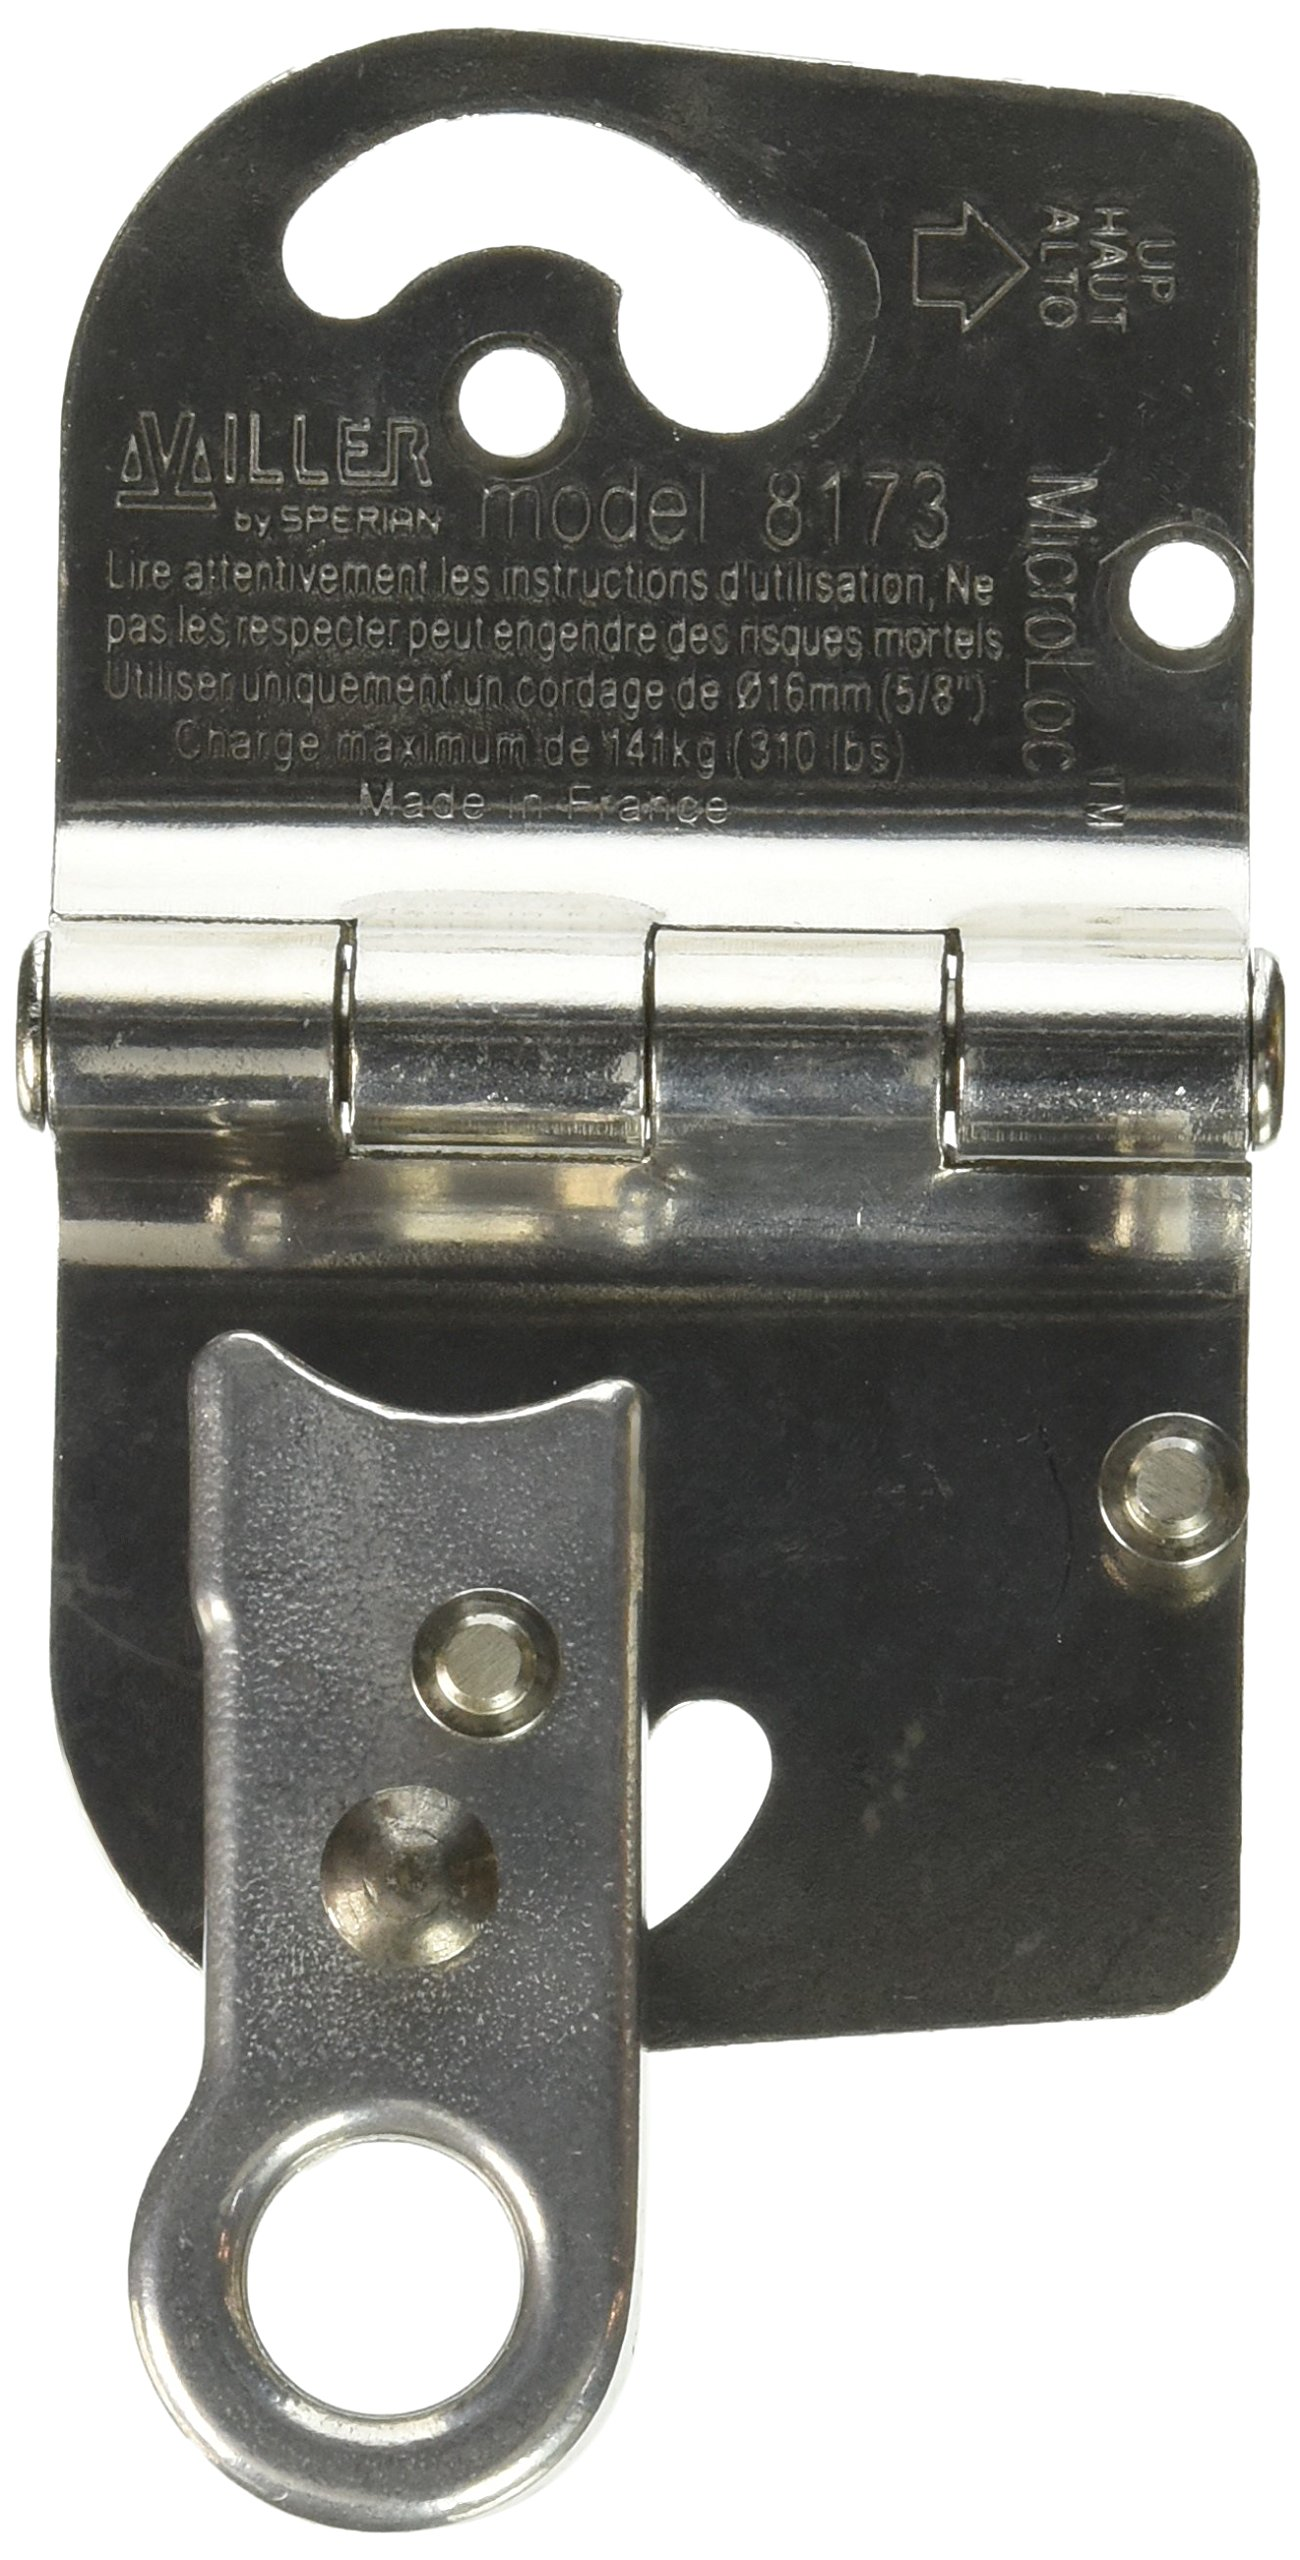 Miller by Honeywell 8173/U MicroLoc Trailing Wire Rope Grabs for 5/8-Inch Wire Rope, Universal by Honeywell (Image #3)